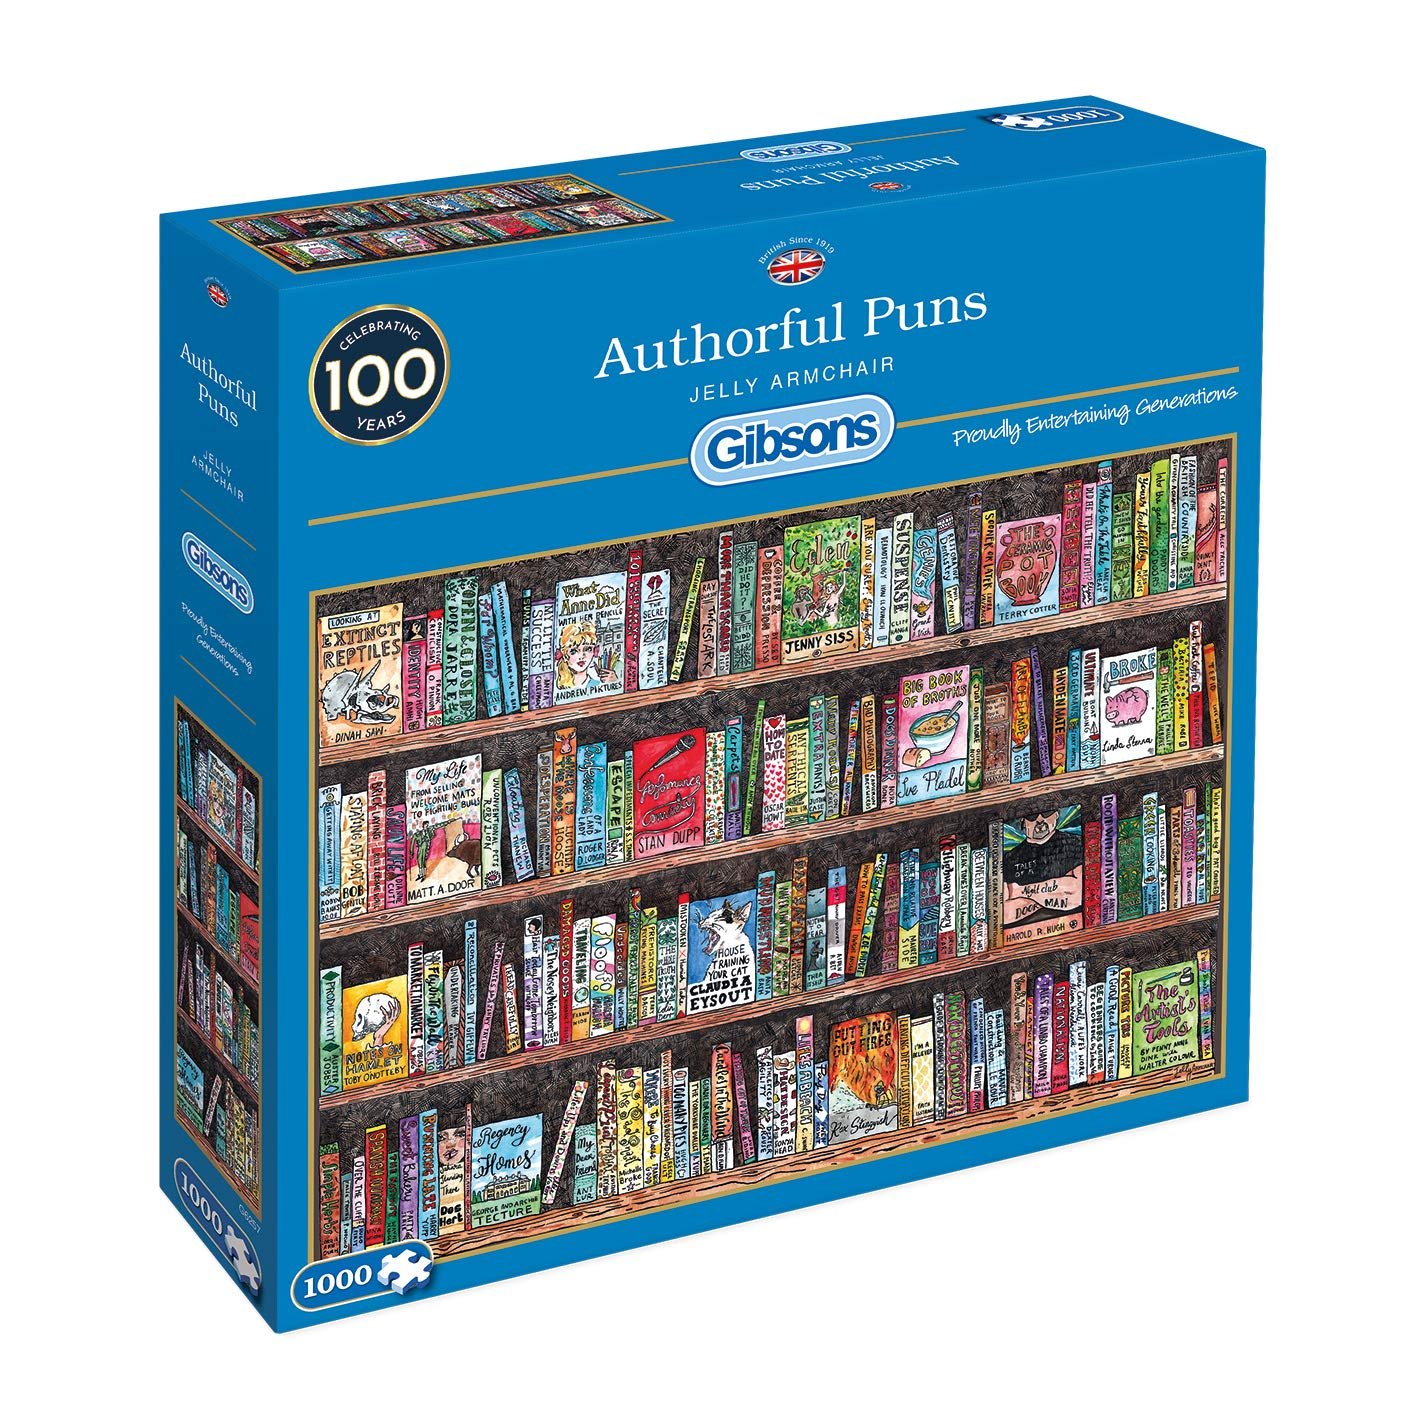 AUTHORFUL PUNS 1000PC JIGSAW